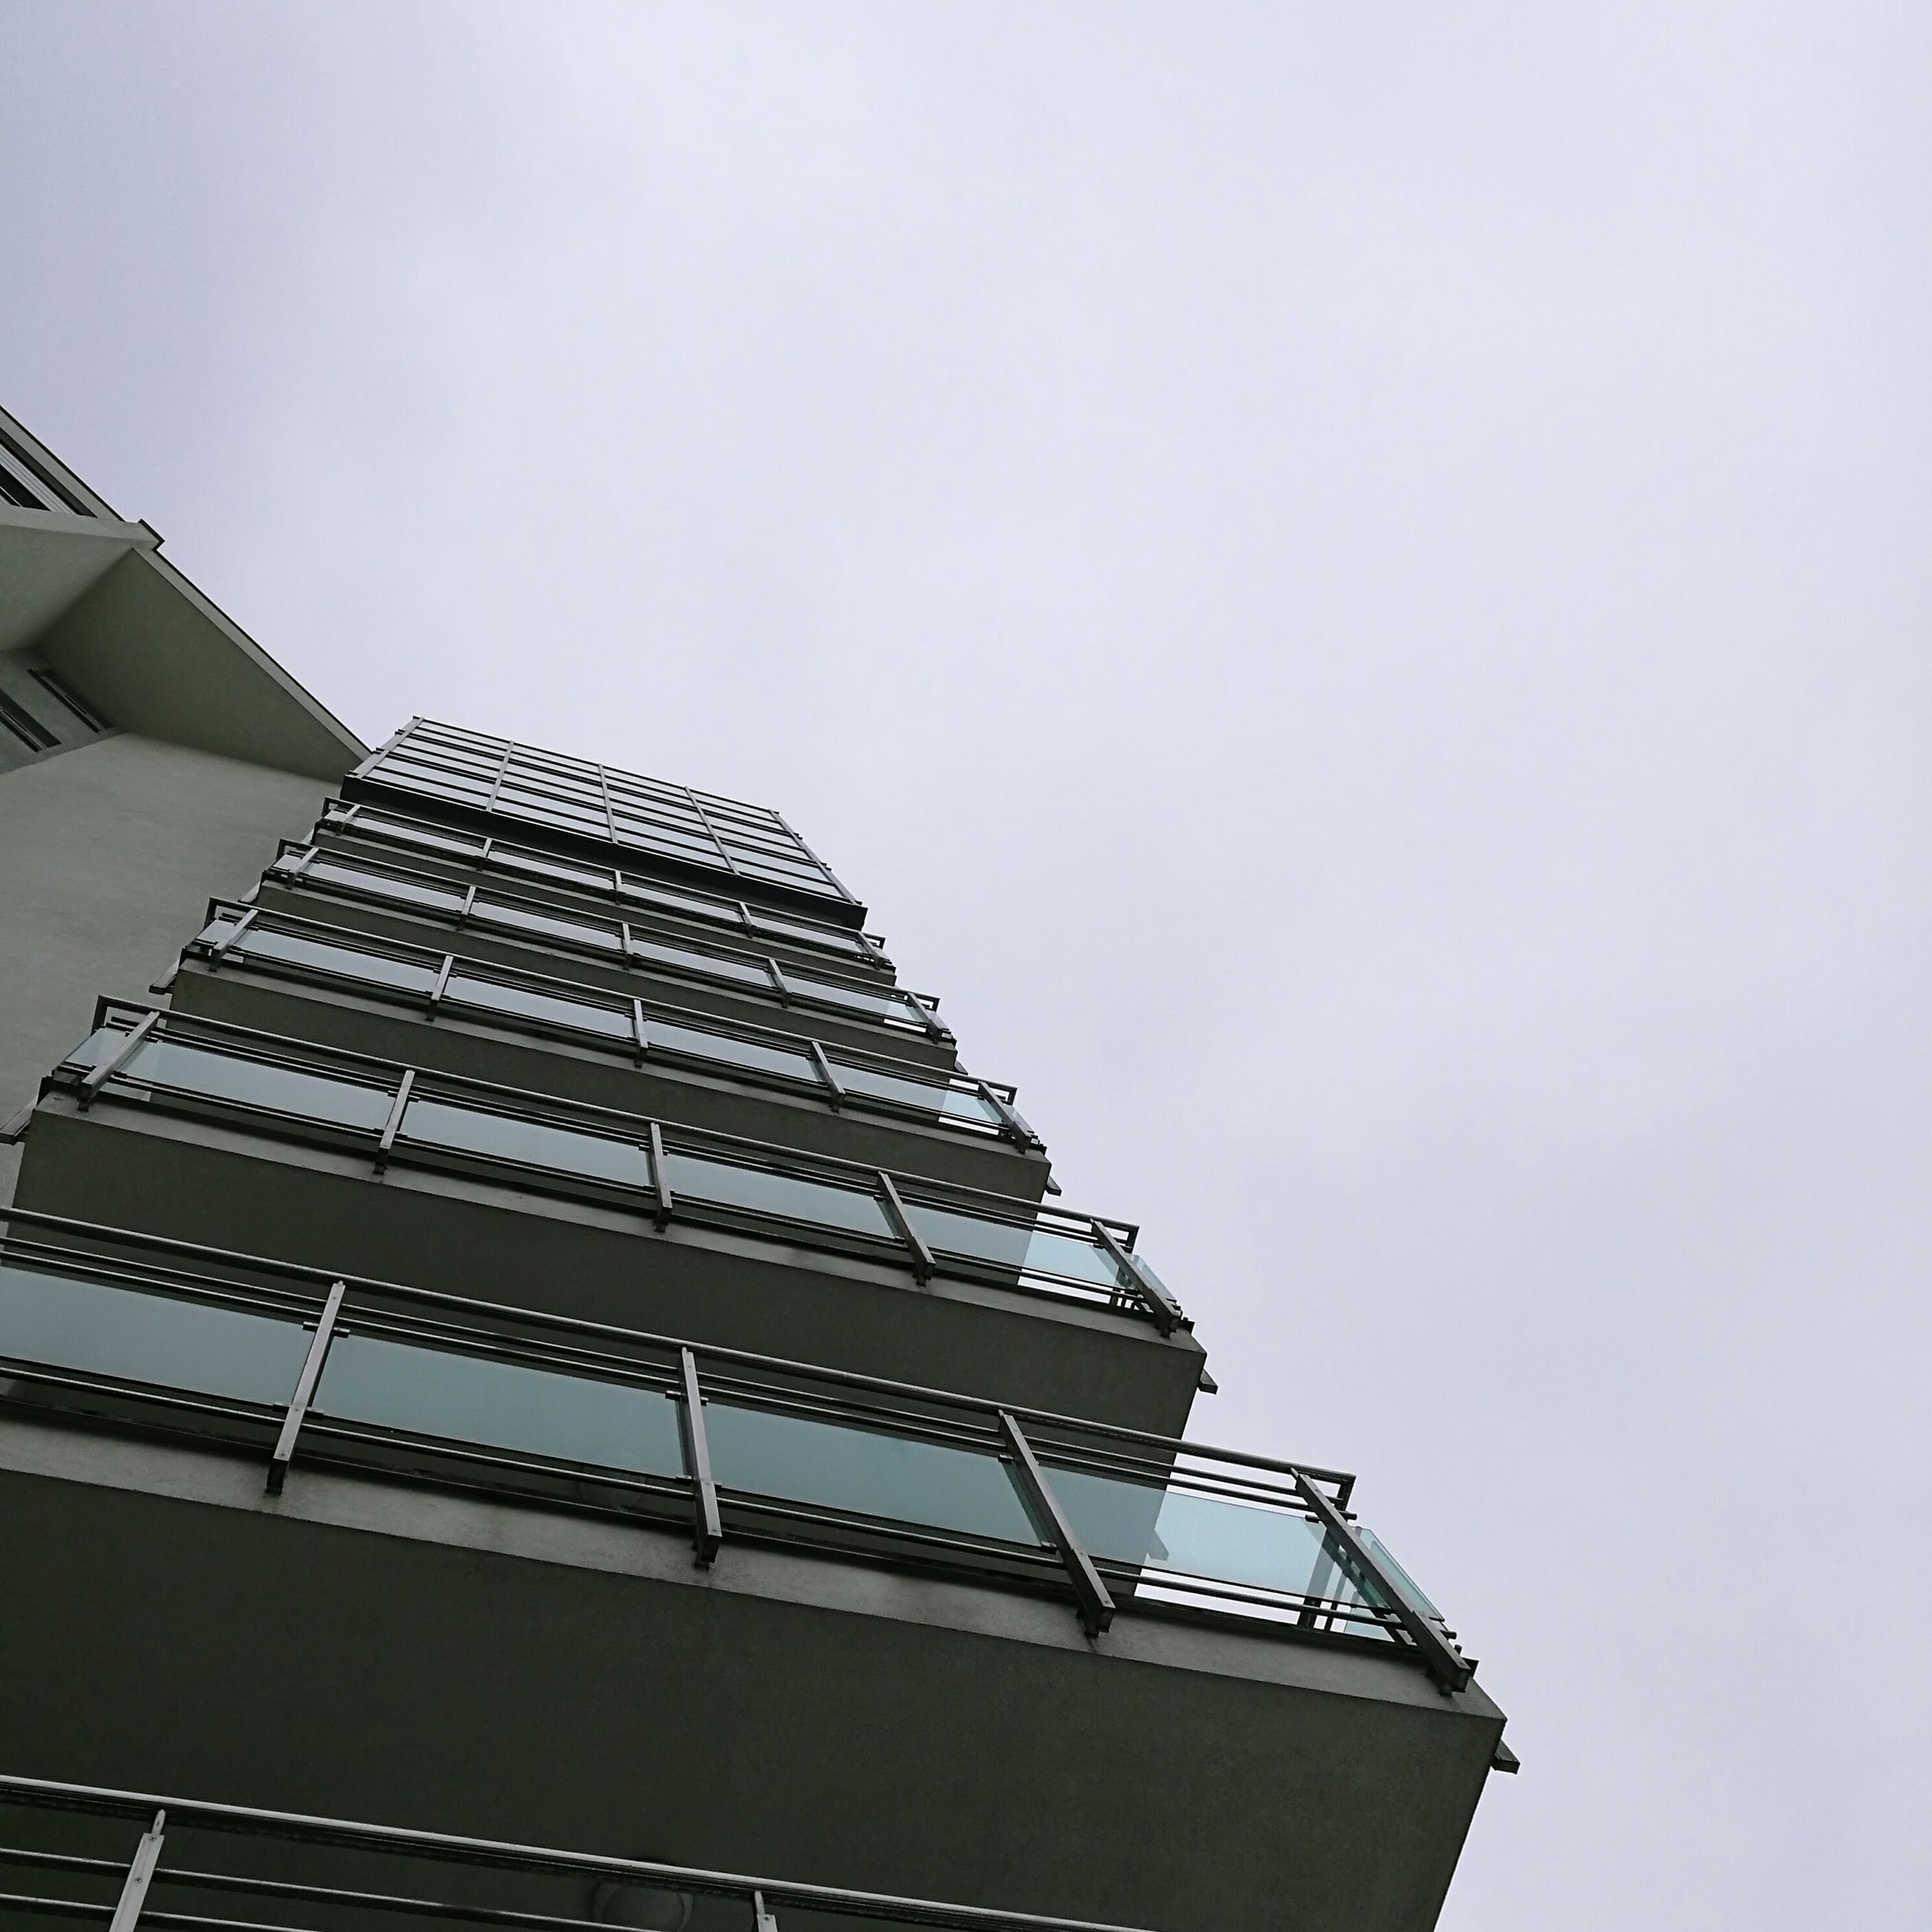 built structure, clear sky, architecture, low angle view, building exterior, no people, sky, outdoors, day, renewable energy